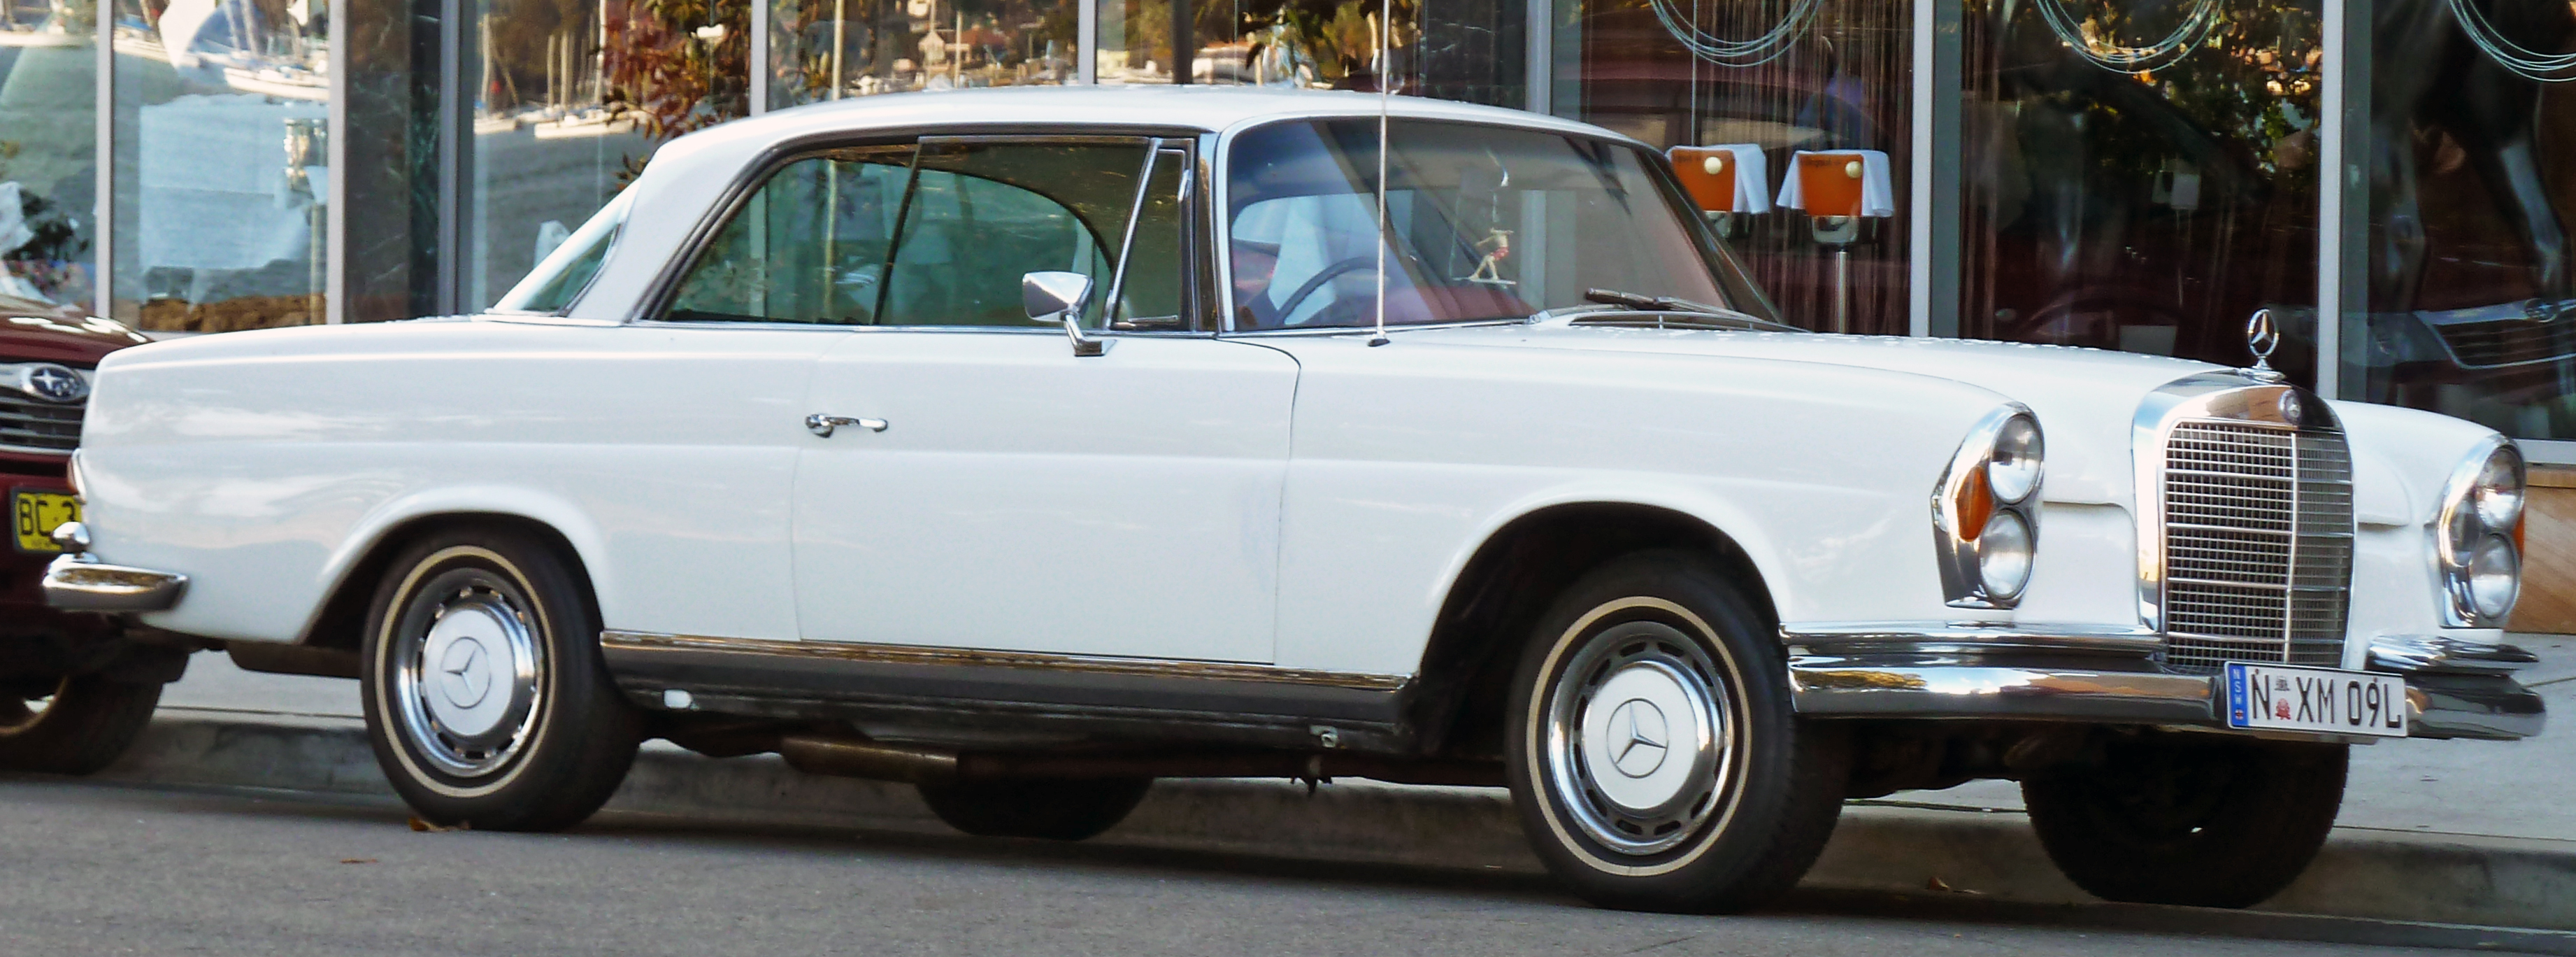 File 1969 mercedes benz 280 se w 111 coupe 2010 07 25 for 1969 mercedes benz 280 se convertible